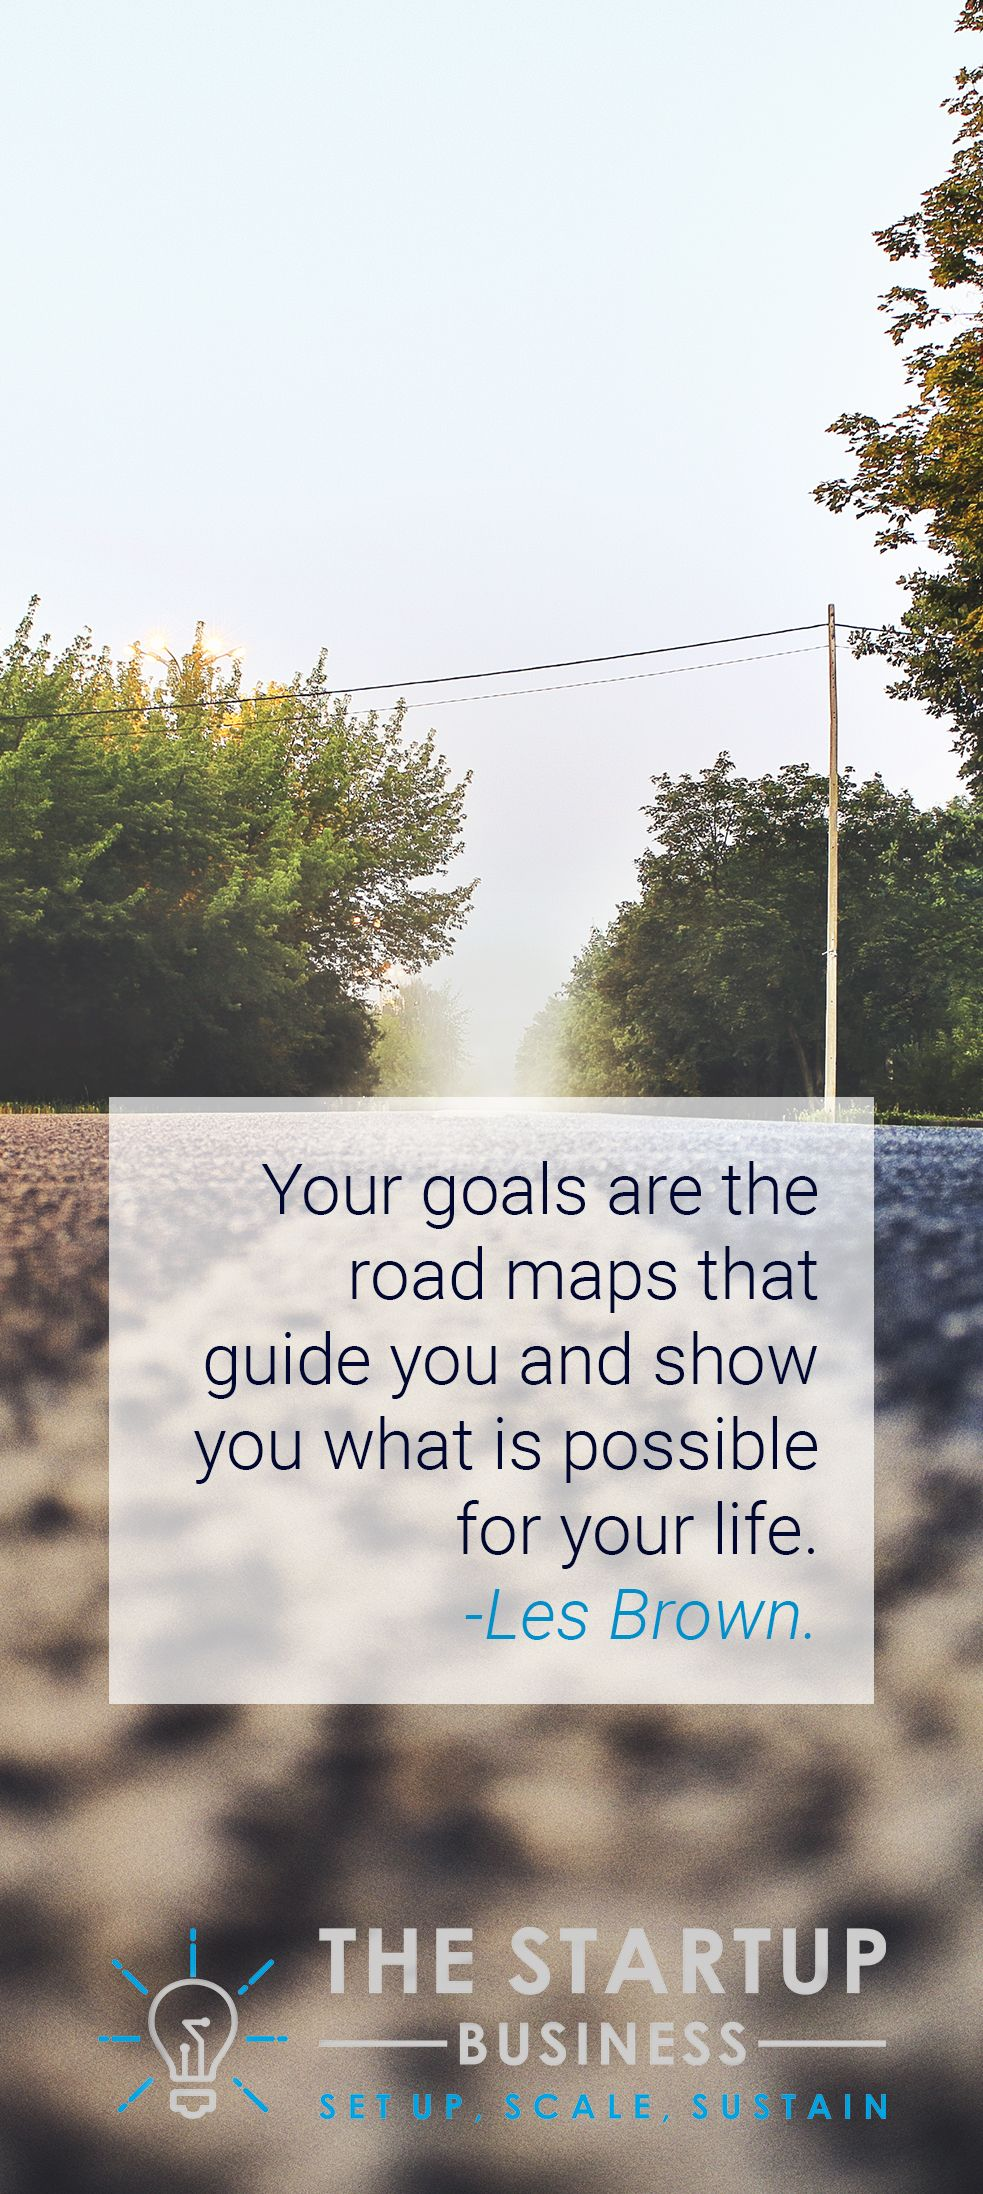 Your goals are the road maps that guide you and show you what is possible for your life. -Les Brown. #TheStartupBusiness #Inspire